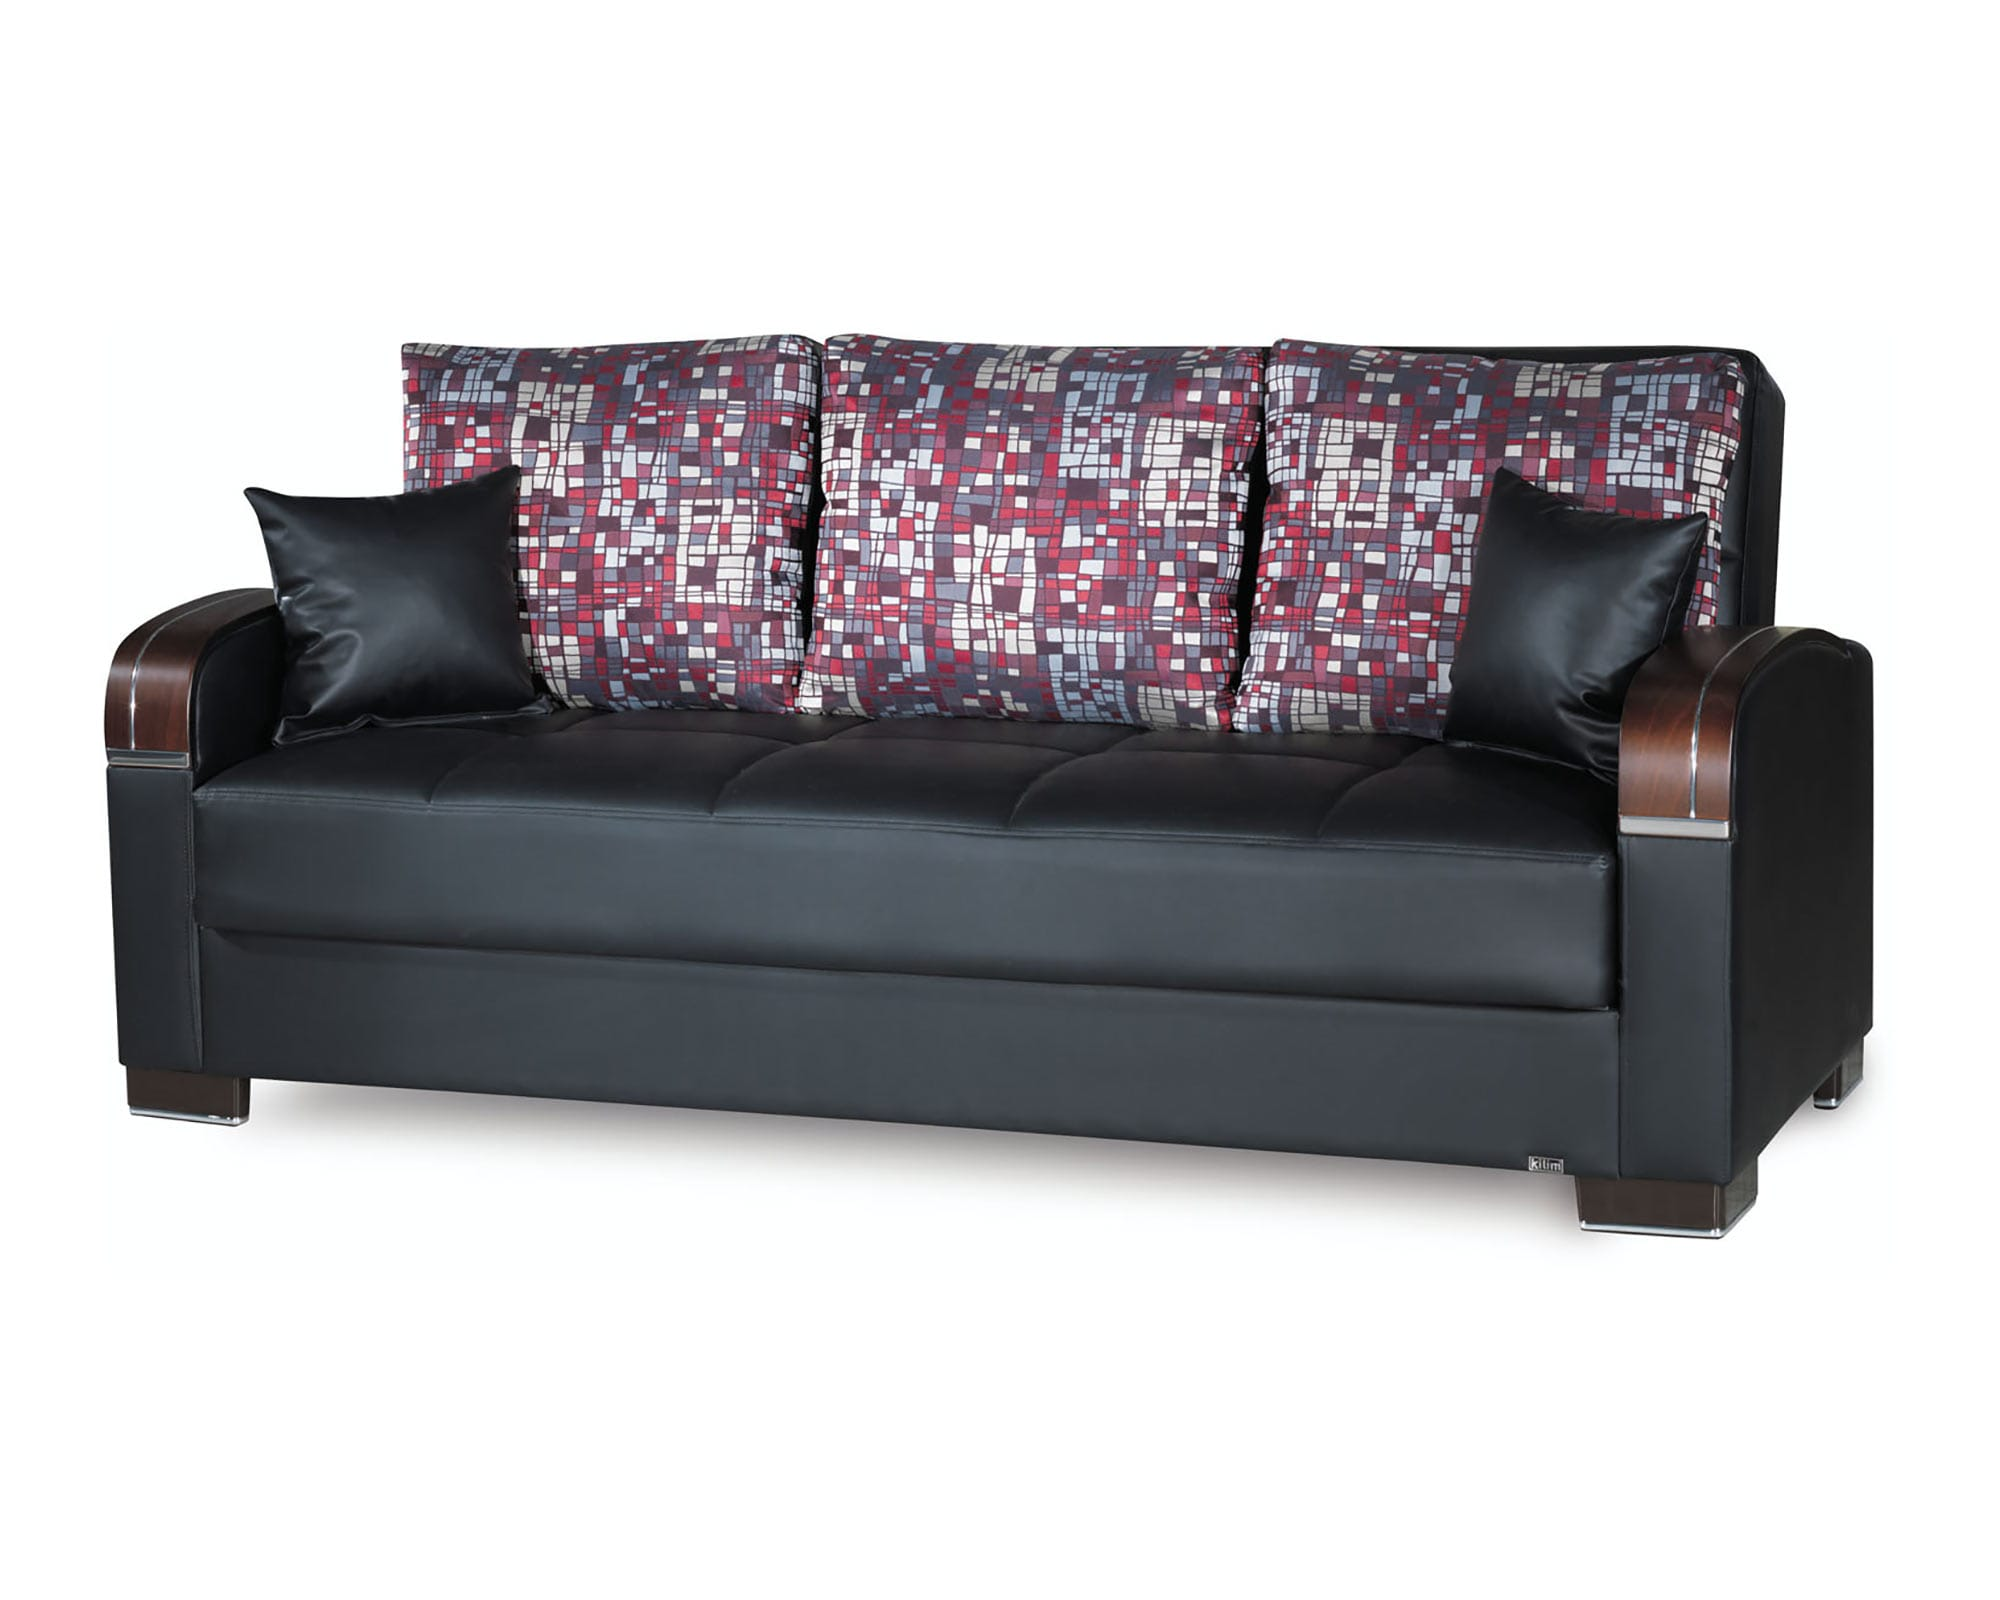 Mobimax Black PU Leather Convertible Sofa by Casamode